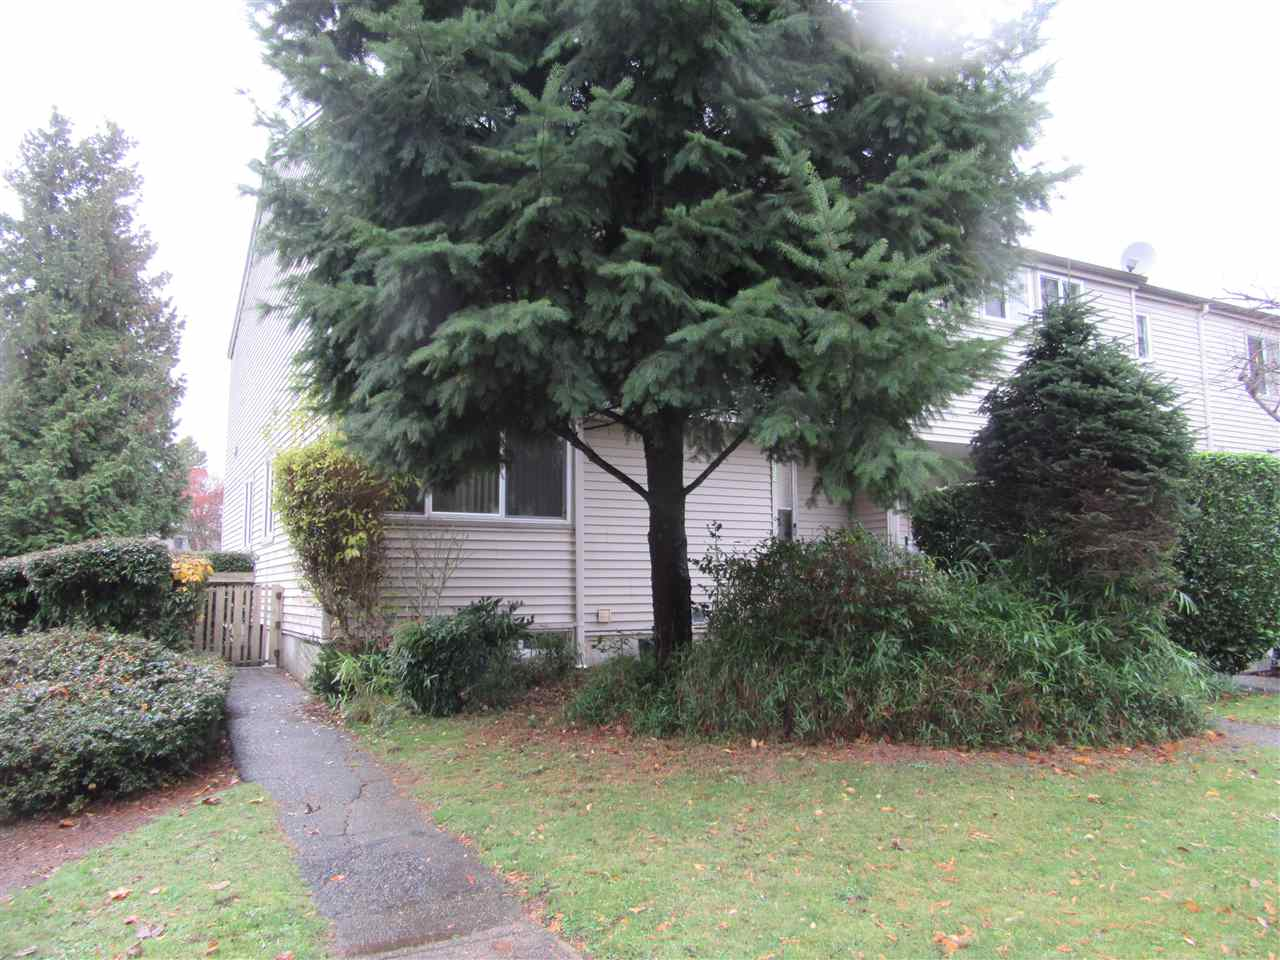 32 3417 E 49TH AVENUE - Killarney VE Townhouse for sale, 3 Bedrooms (R2518414) - #1